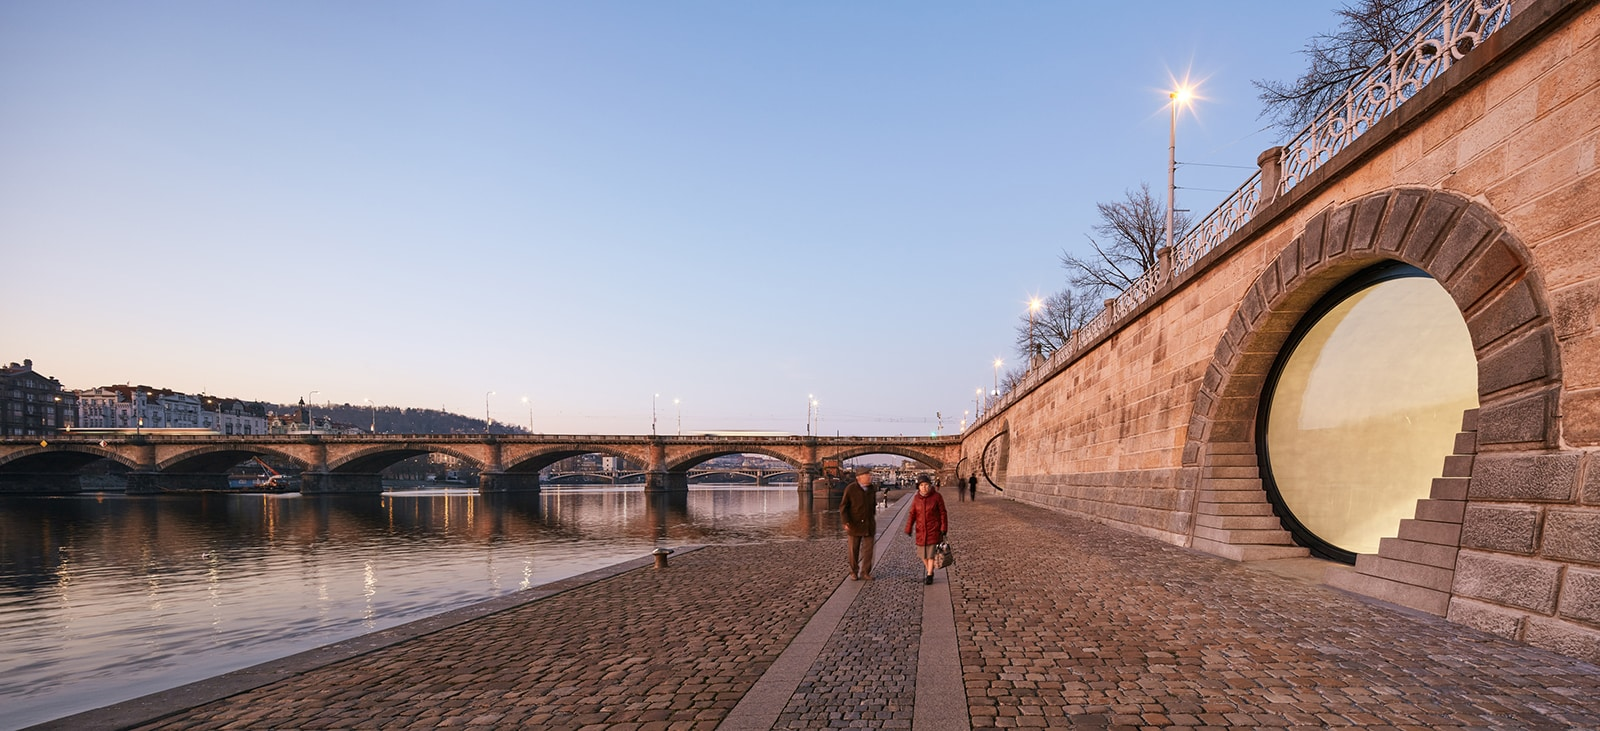 Revitalization of Prague's Riverfront  - 12 1 63